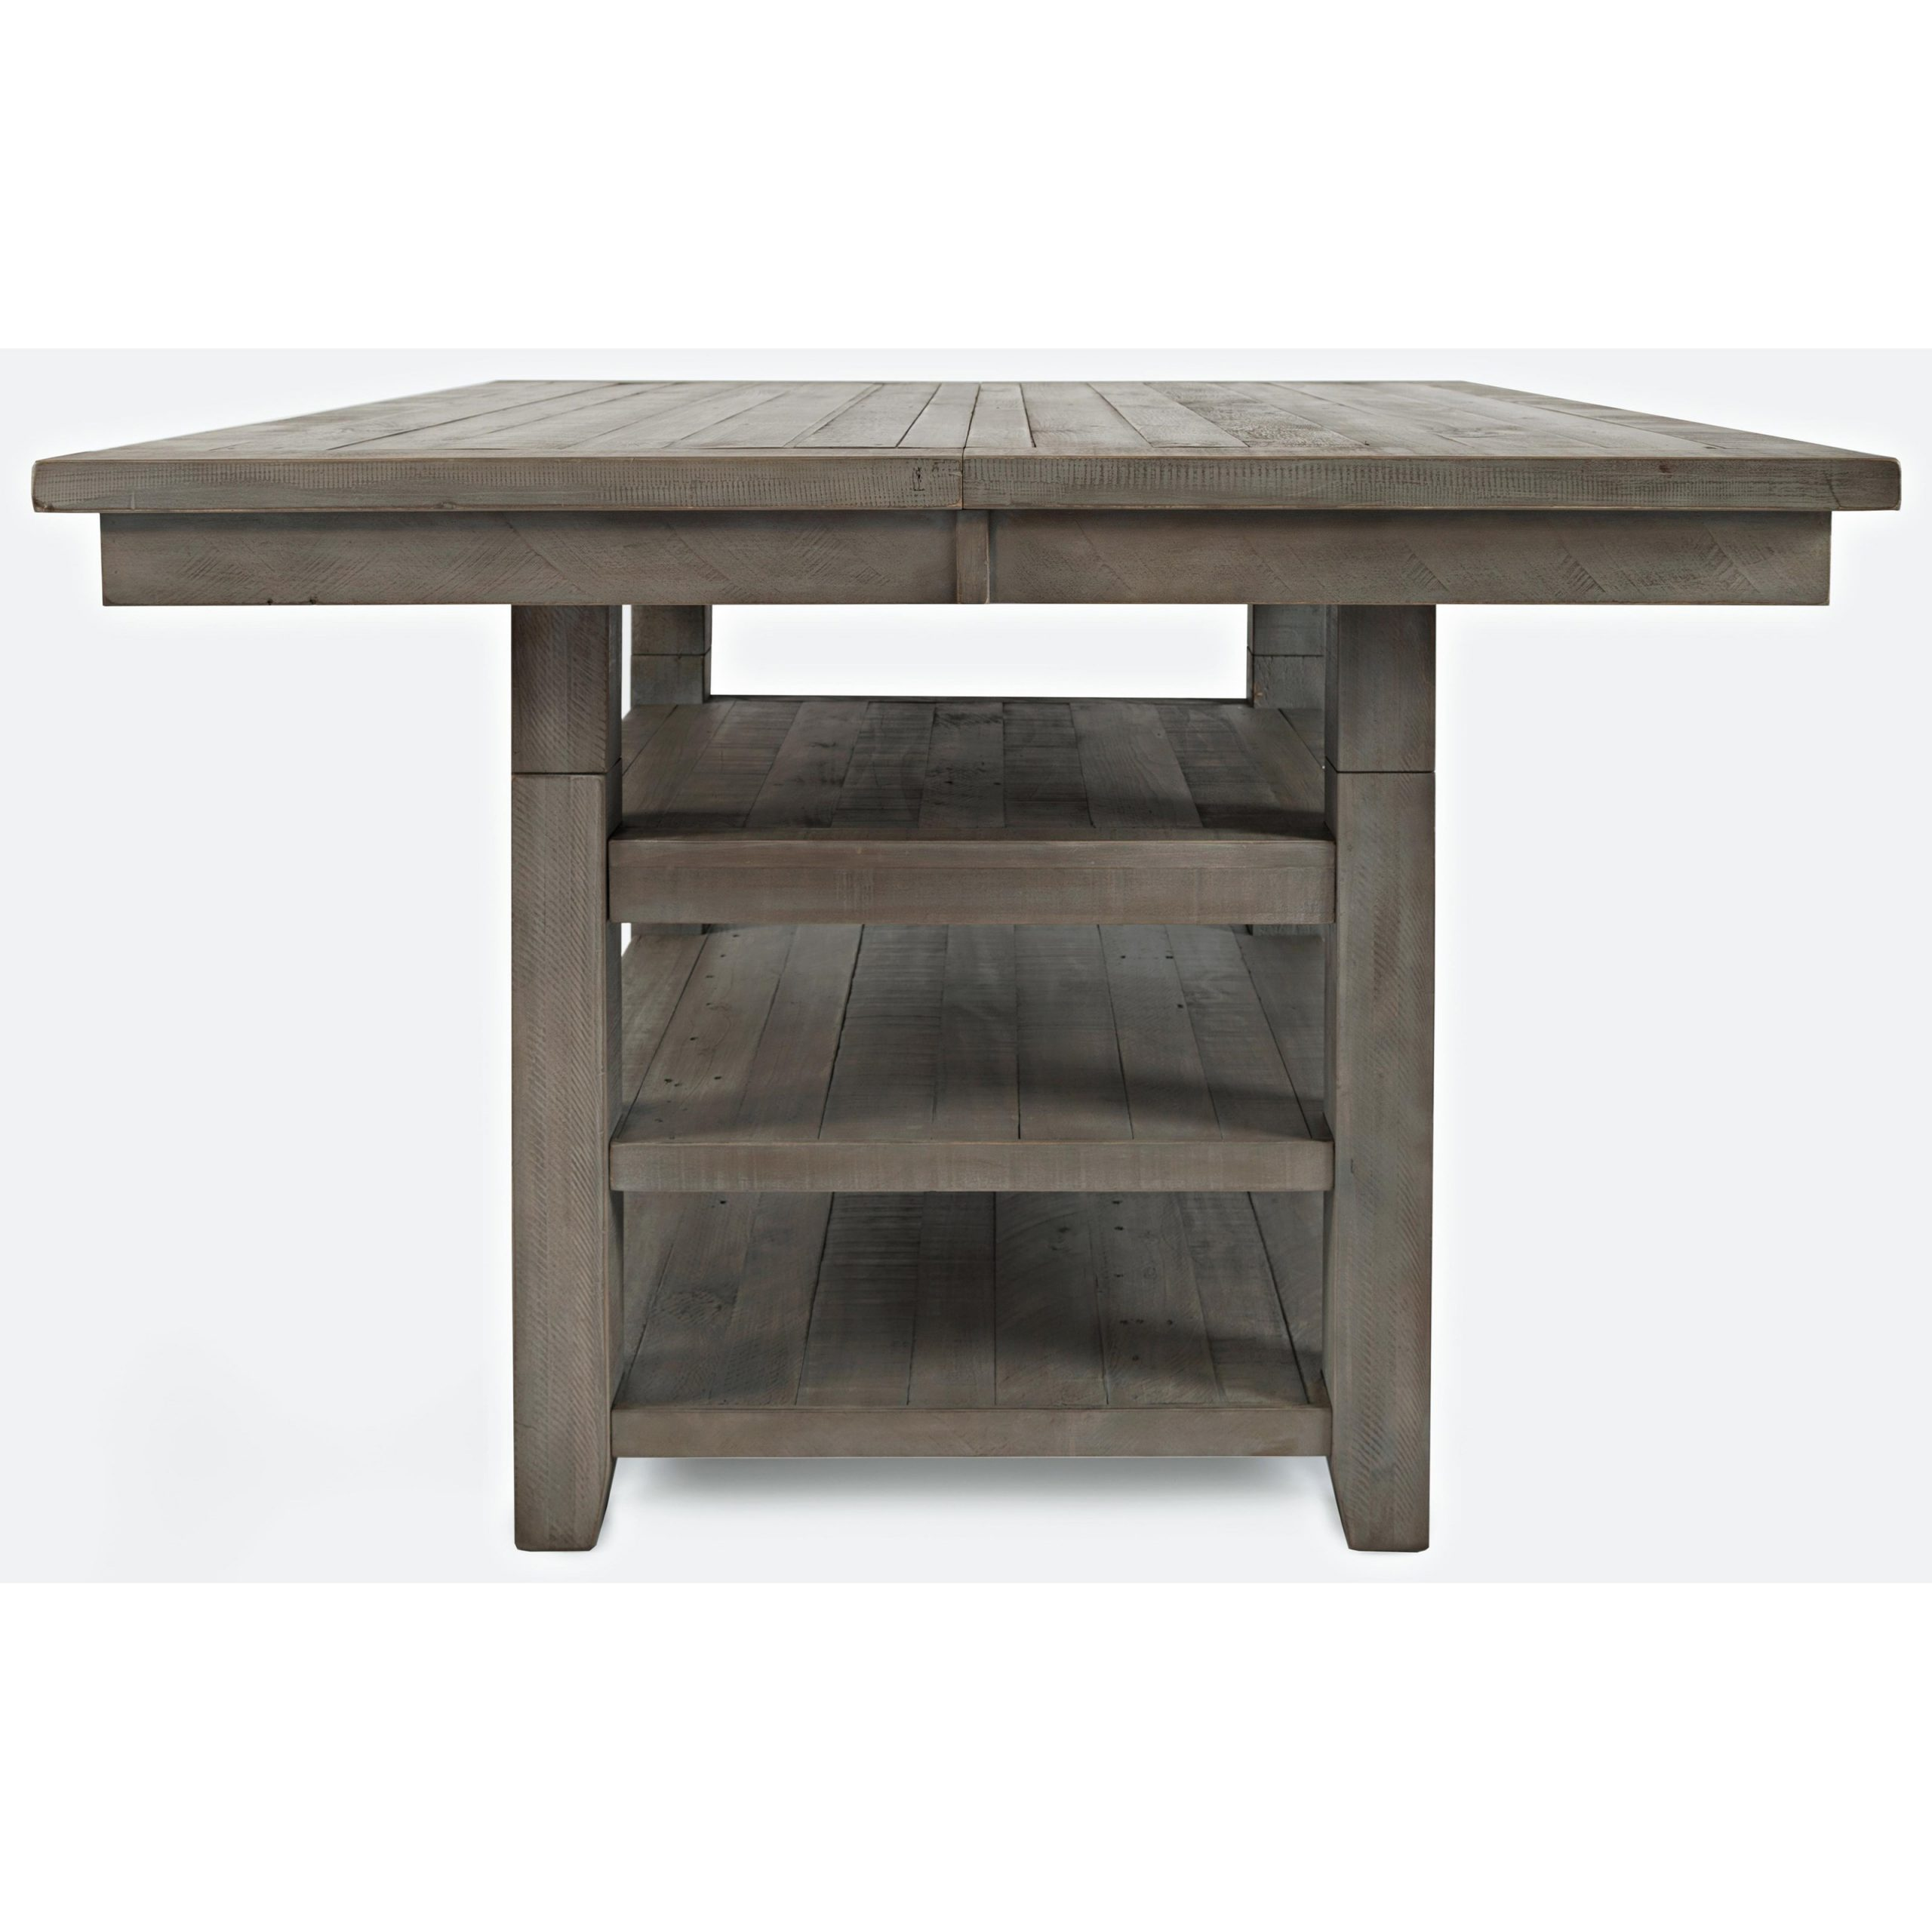 Jofran Outer Banks Hi/low Square Storage Dining Table Regarding Most Current Gray Wash Banks Pedestal Extending Dining Tables (View 16 of 25)